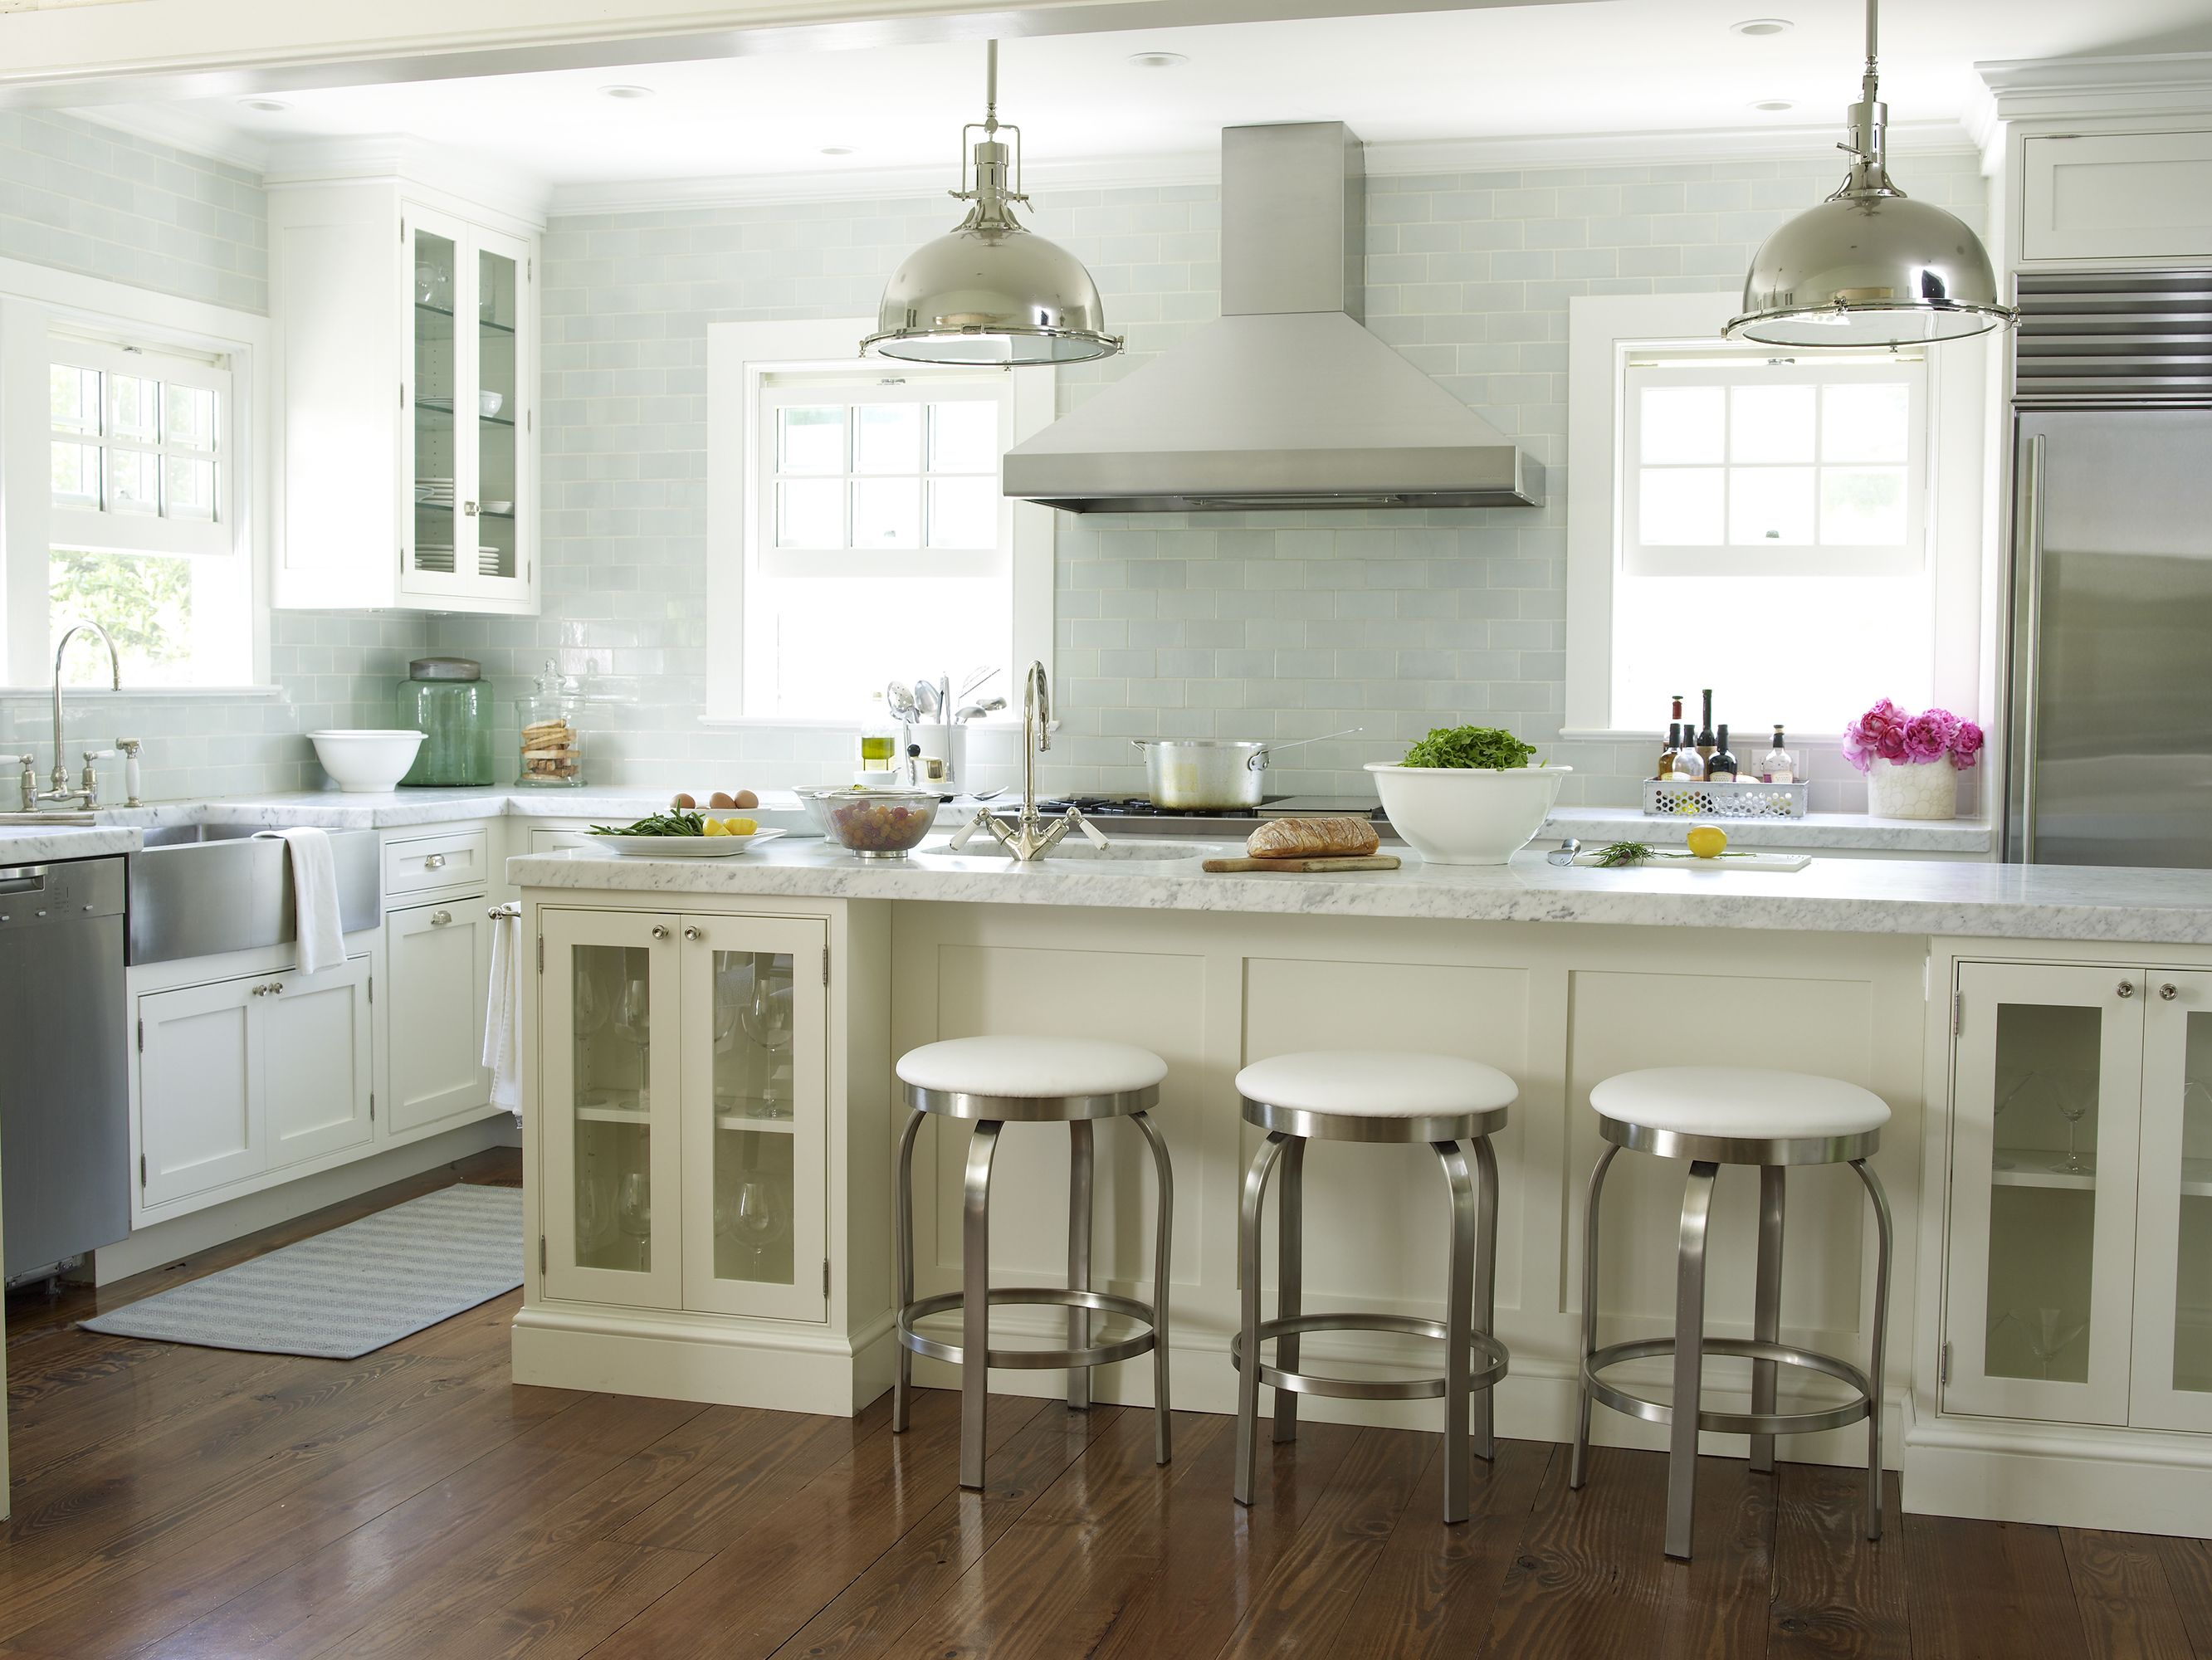 20 Gorgeous Island Ideas For Your Dream Kitchen